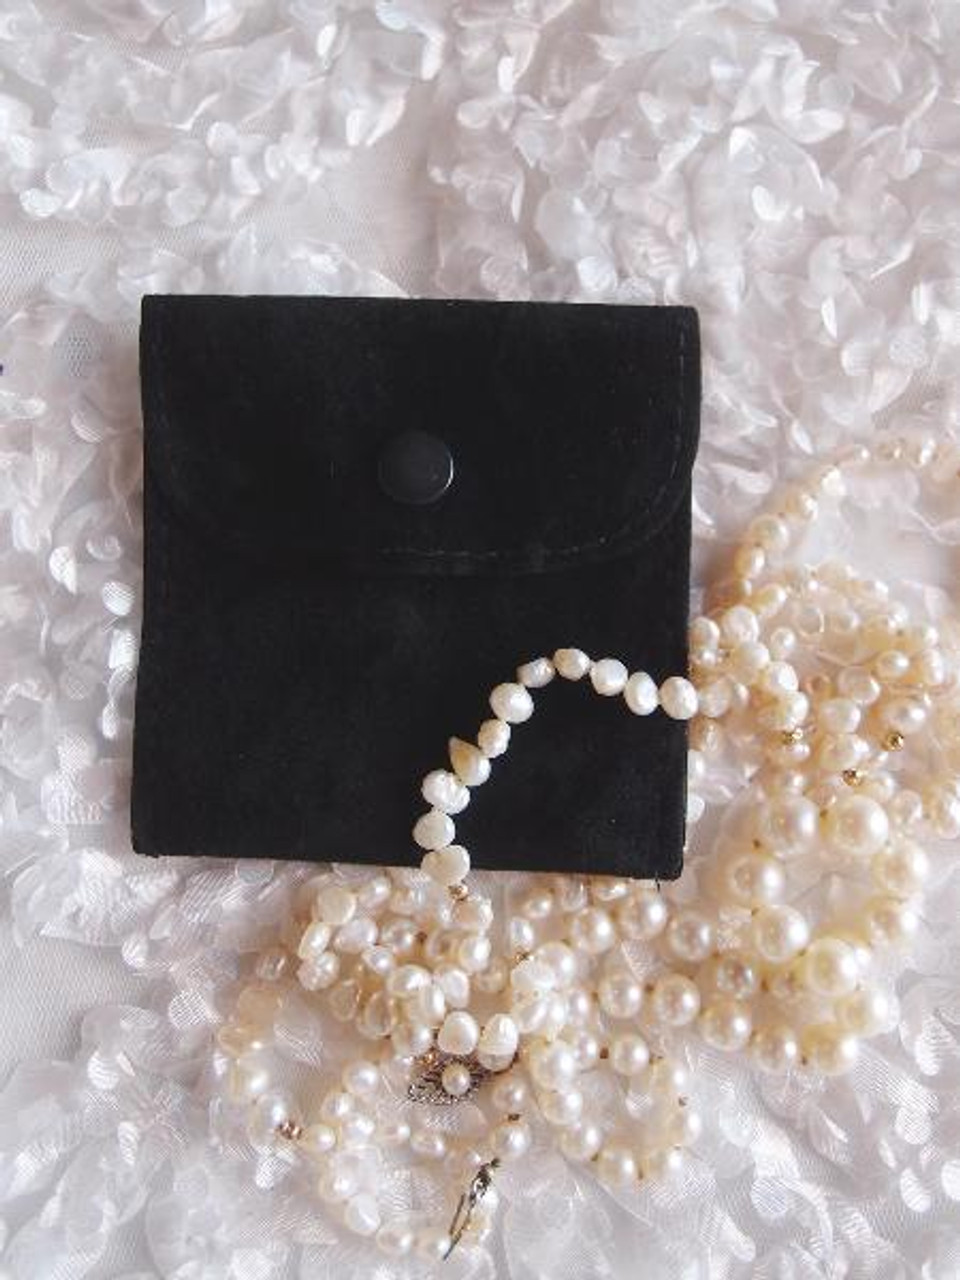 Black Velvet Jewelry Pouch with Snap Fastener 3 x 3 inches, J134-39 | Packaging Decor